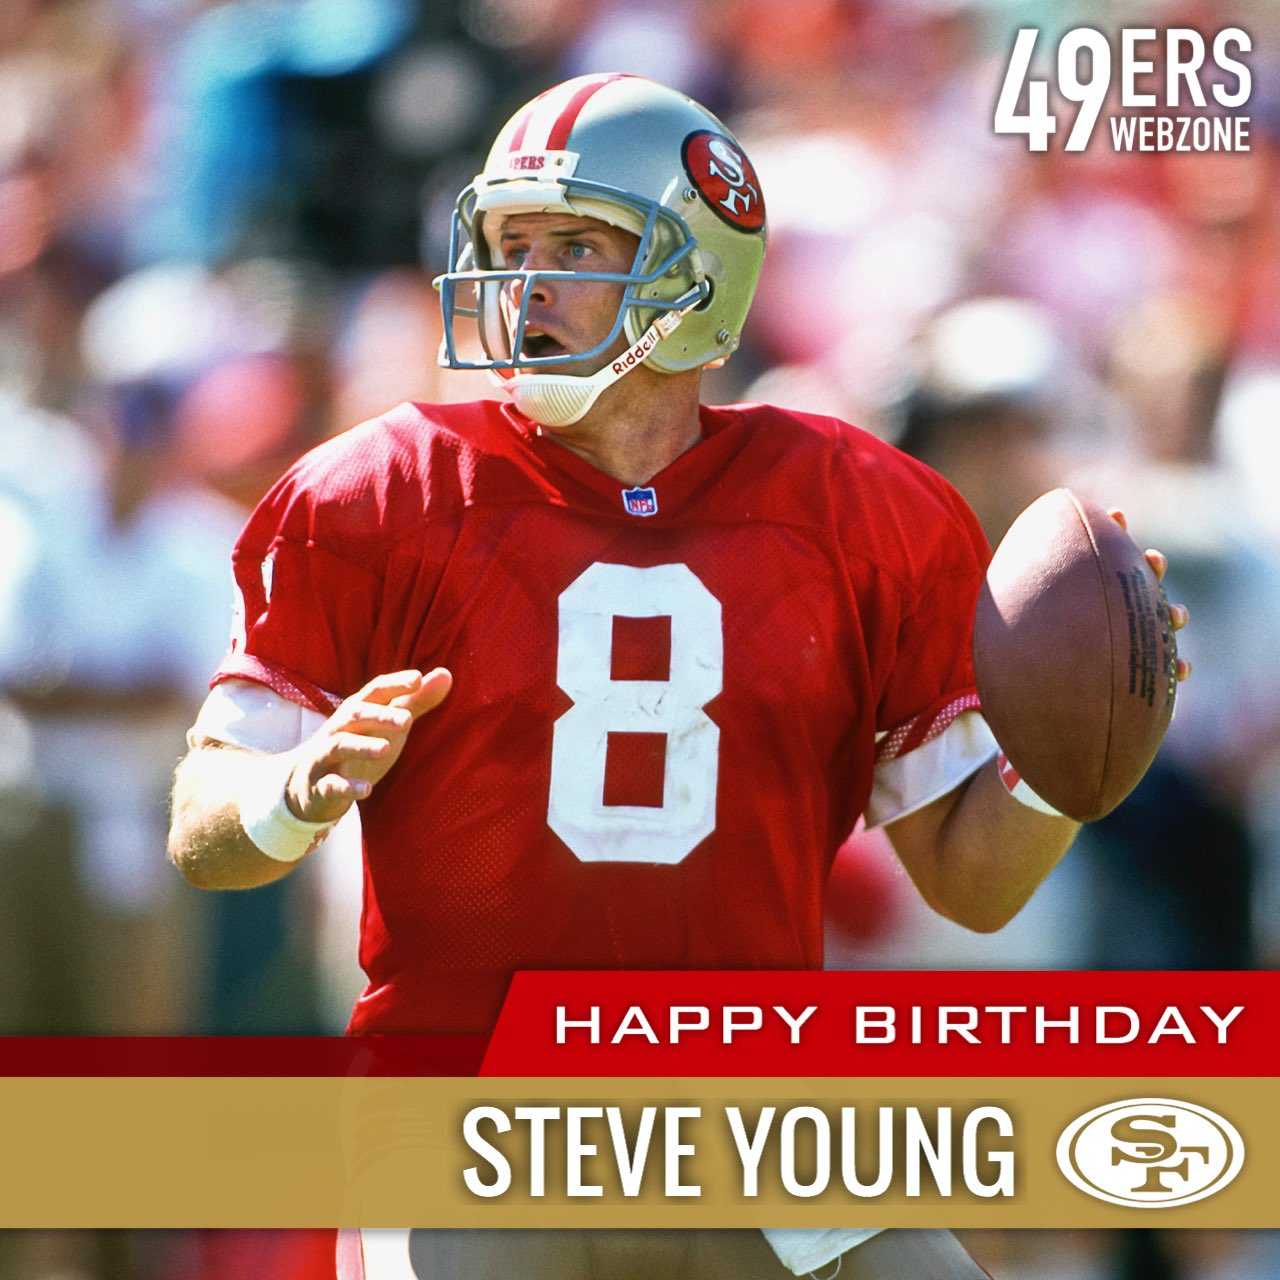 Happy birthday to Hall of Fame quarterback Steve Young!